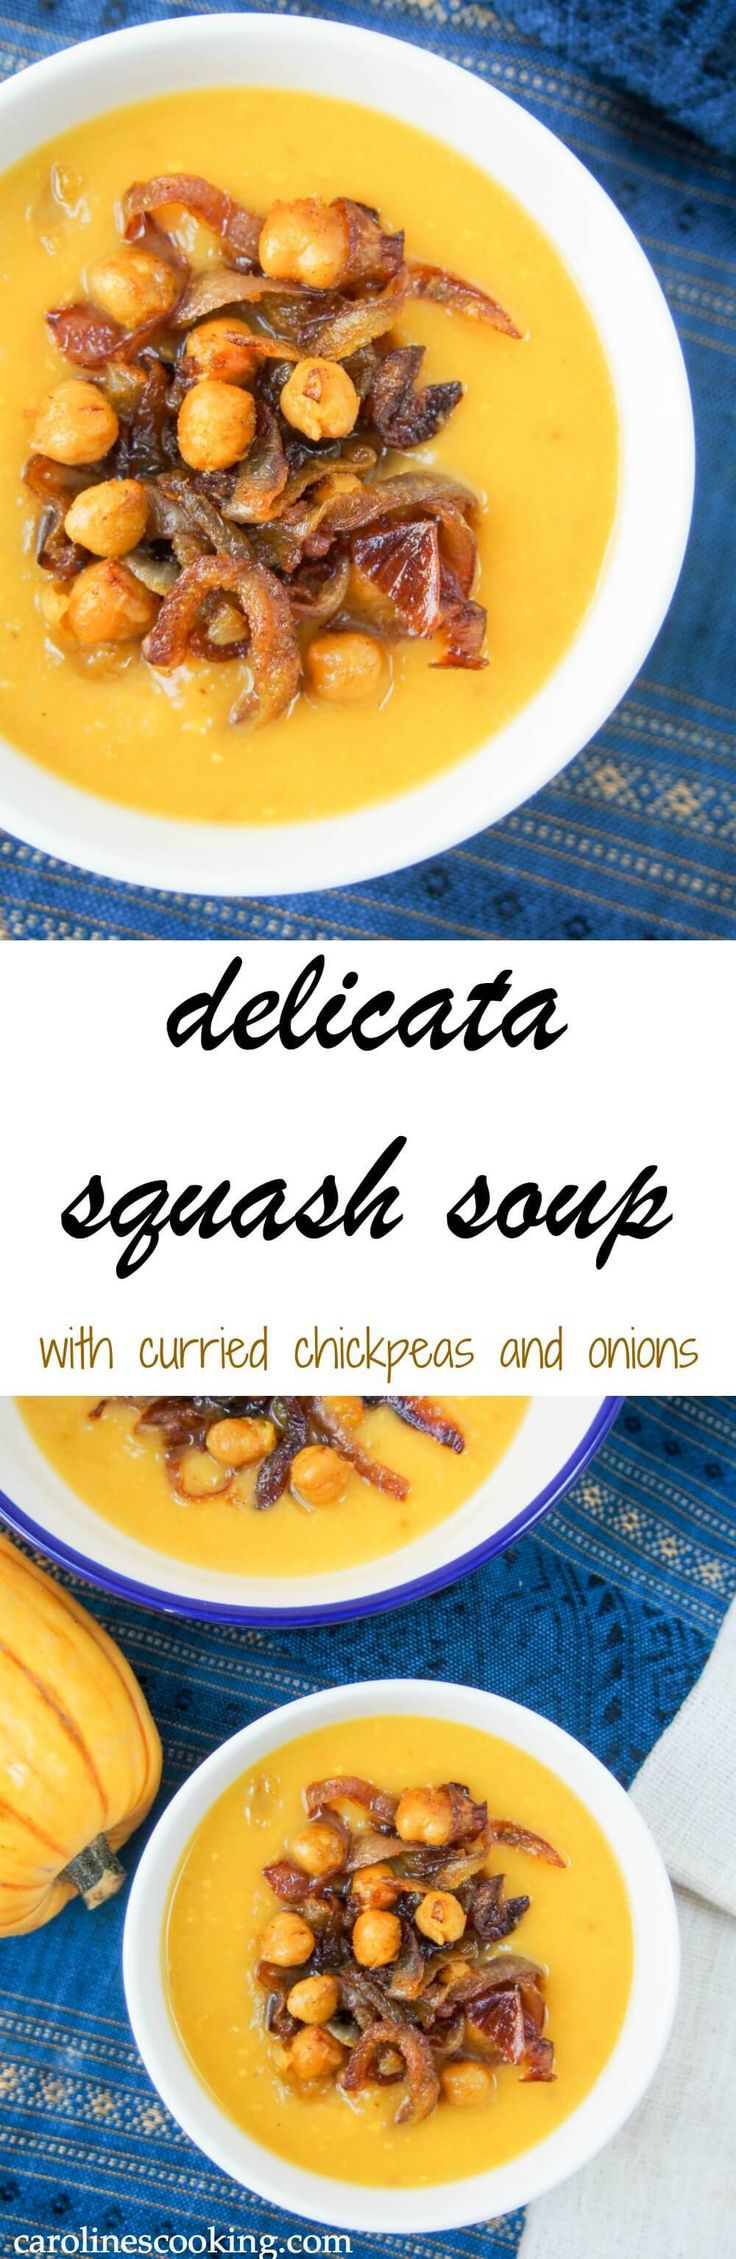 This delicata squash soup is super easy to make and tastes delicious, especially with the curried chickpea & onion topping. Perfect for lunch on a cold day. Vegetarian, vegan and gluten free.